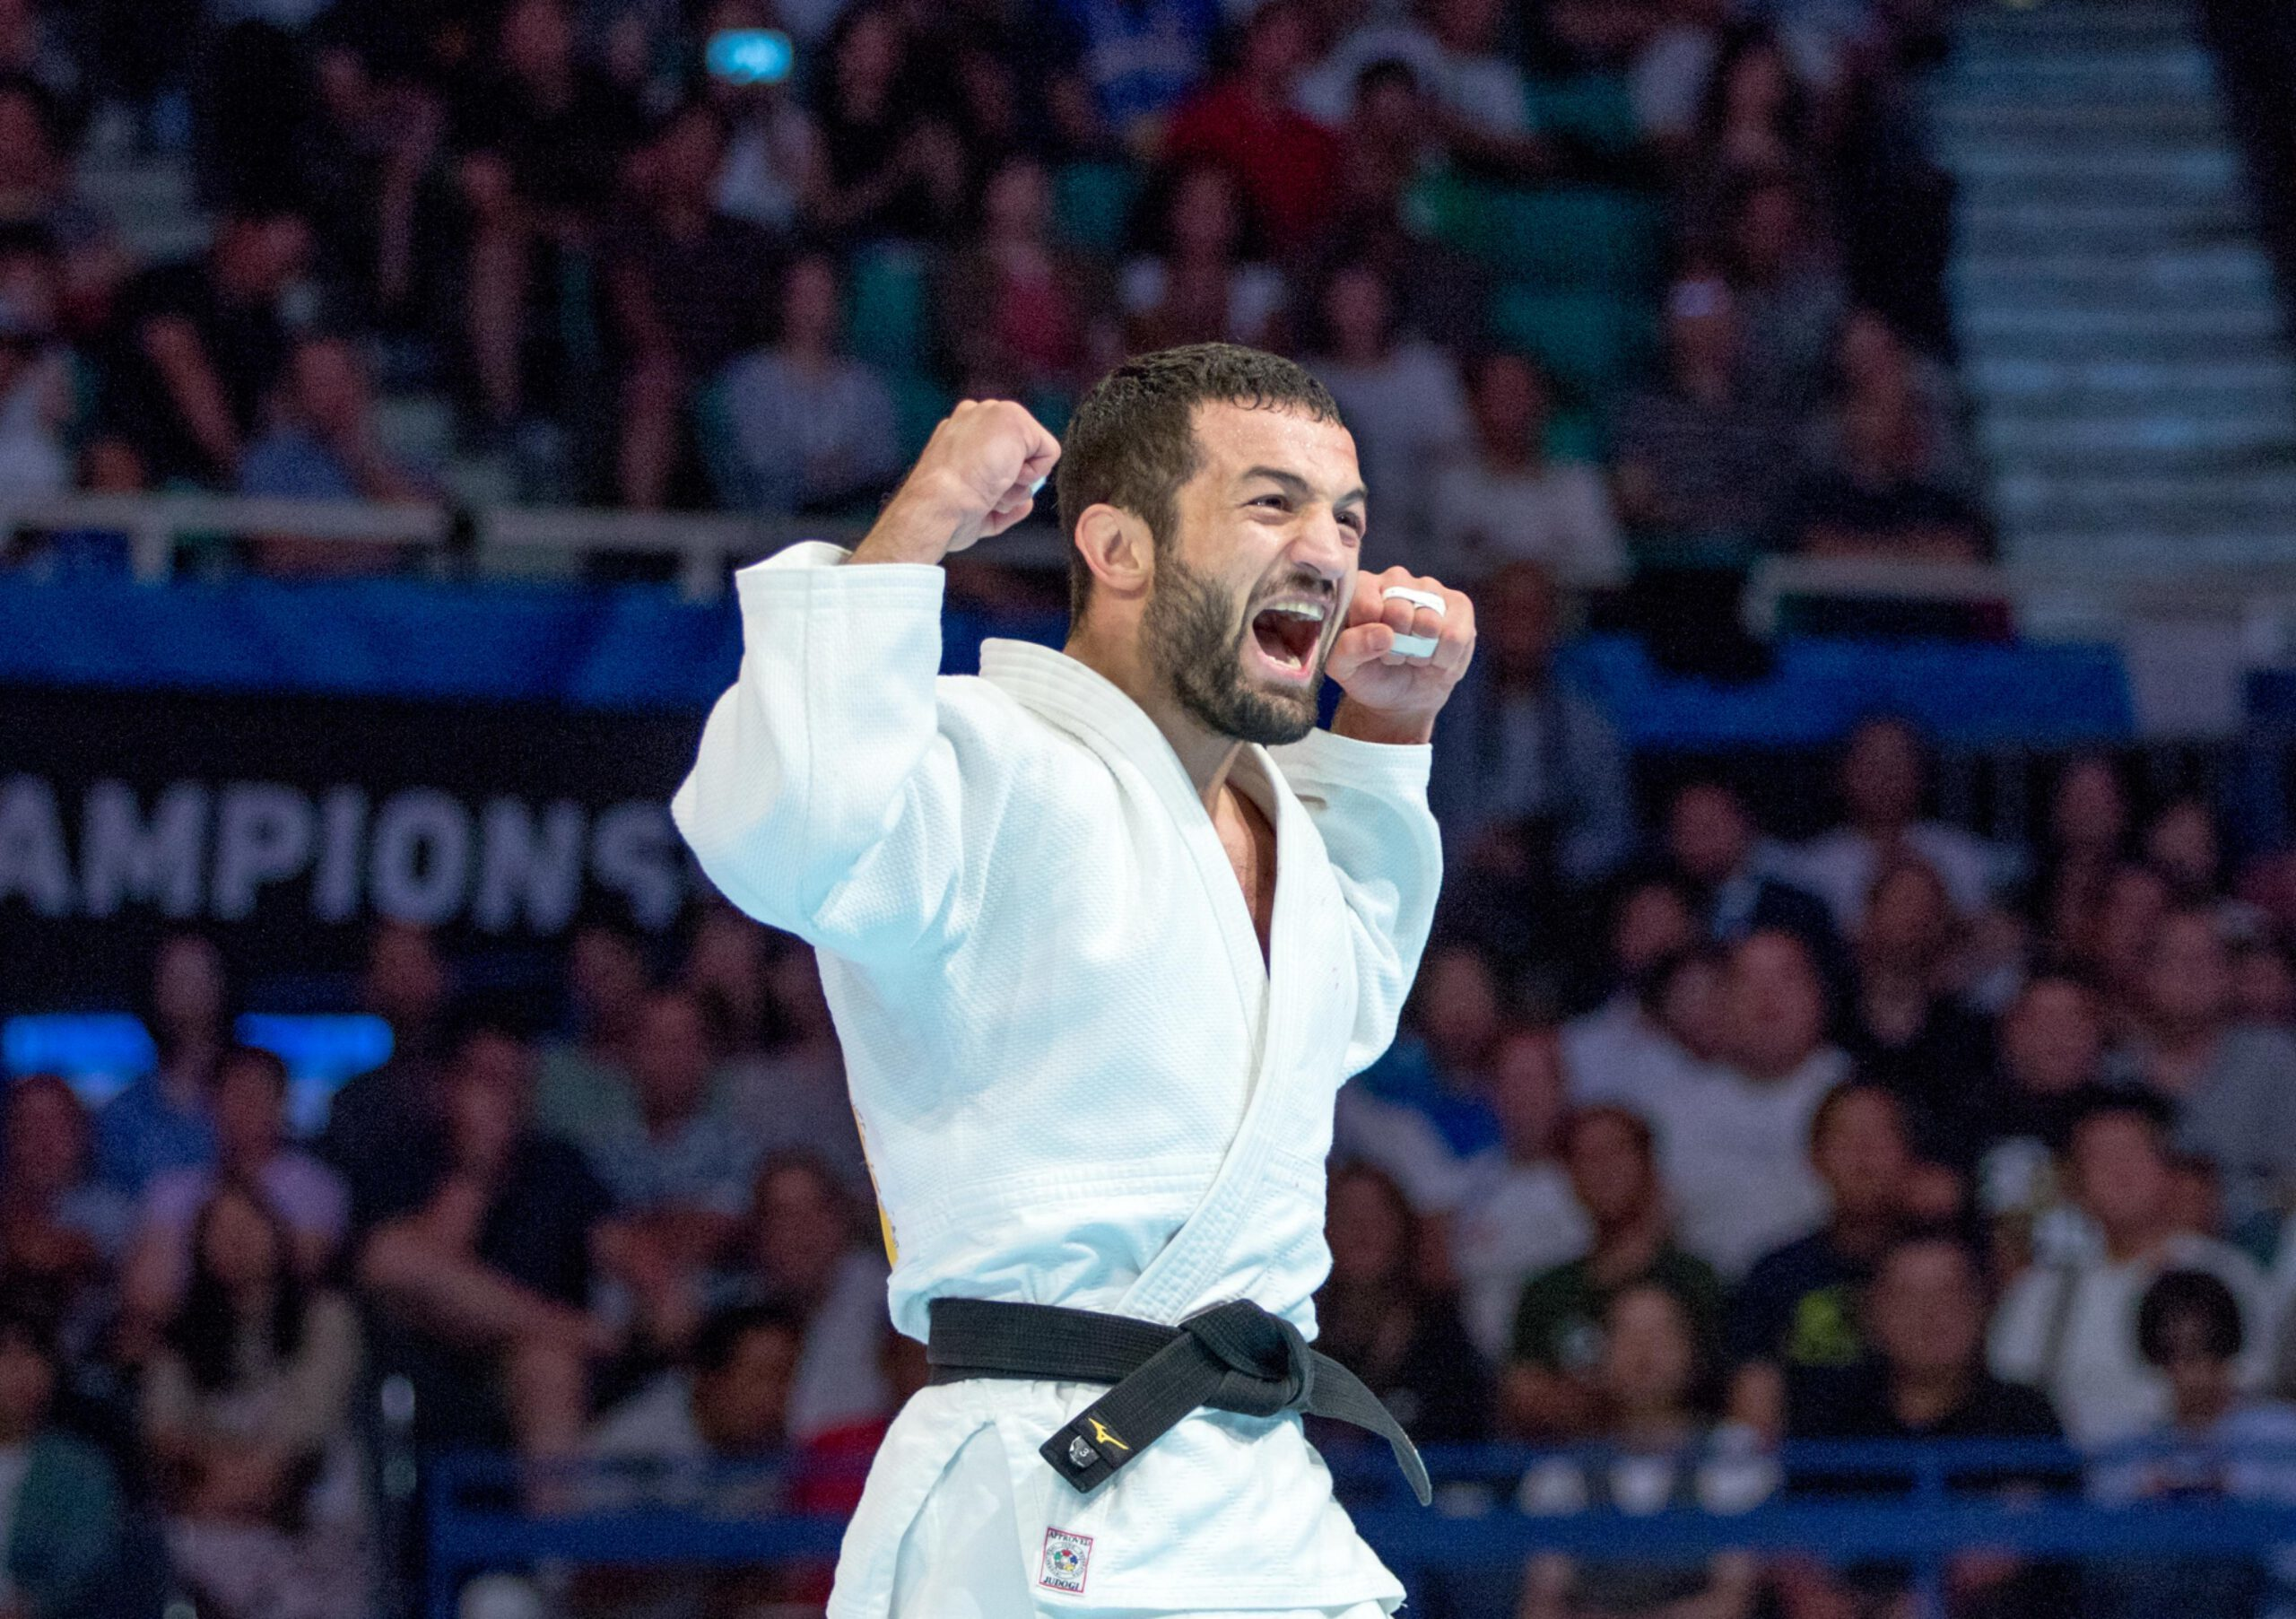 EXCITEMENT BUILDS AS DAY ONE OF EUROPEAN CHAMPIONSHIPS DRAWS CLOSE